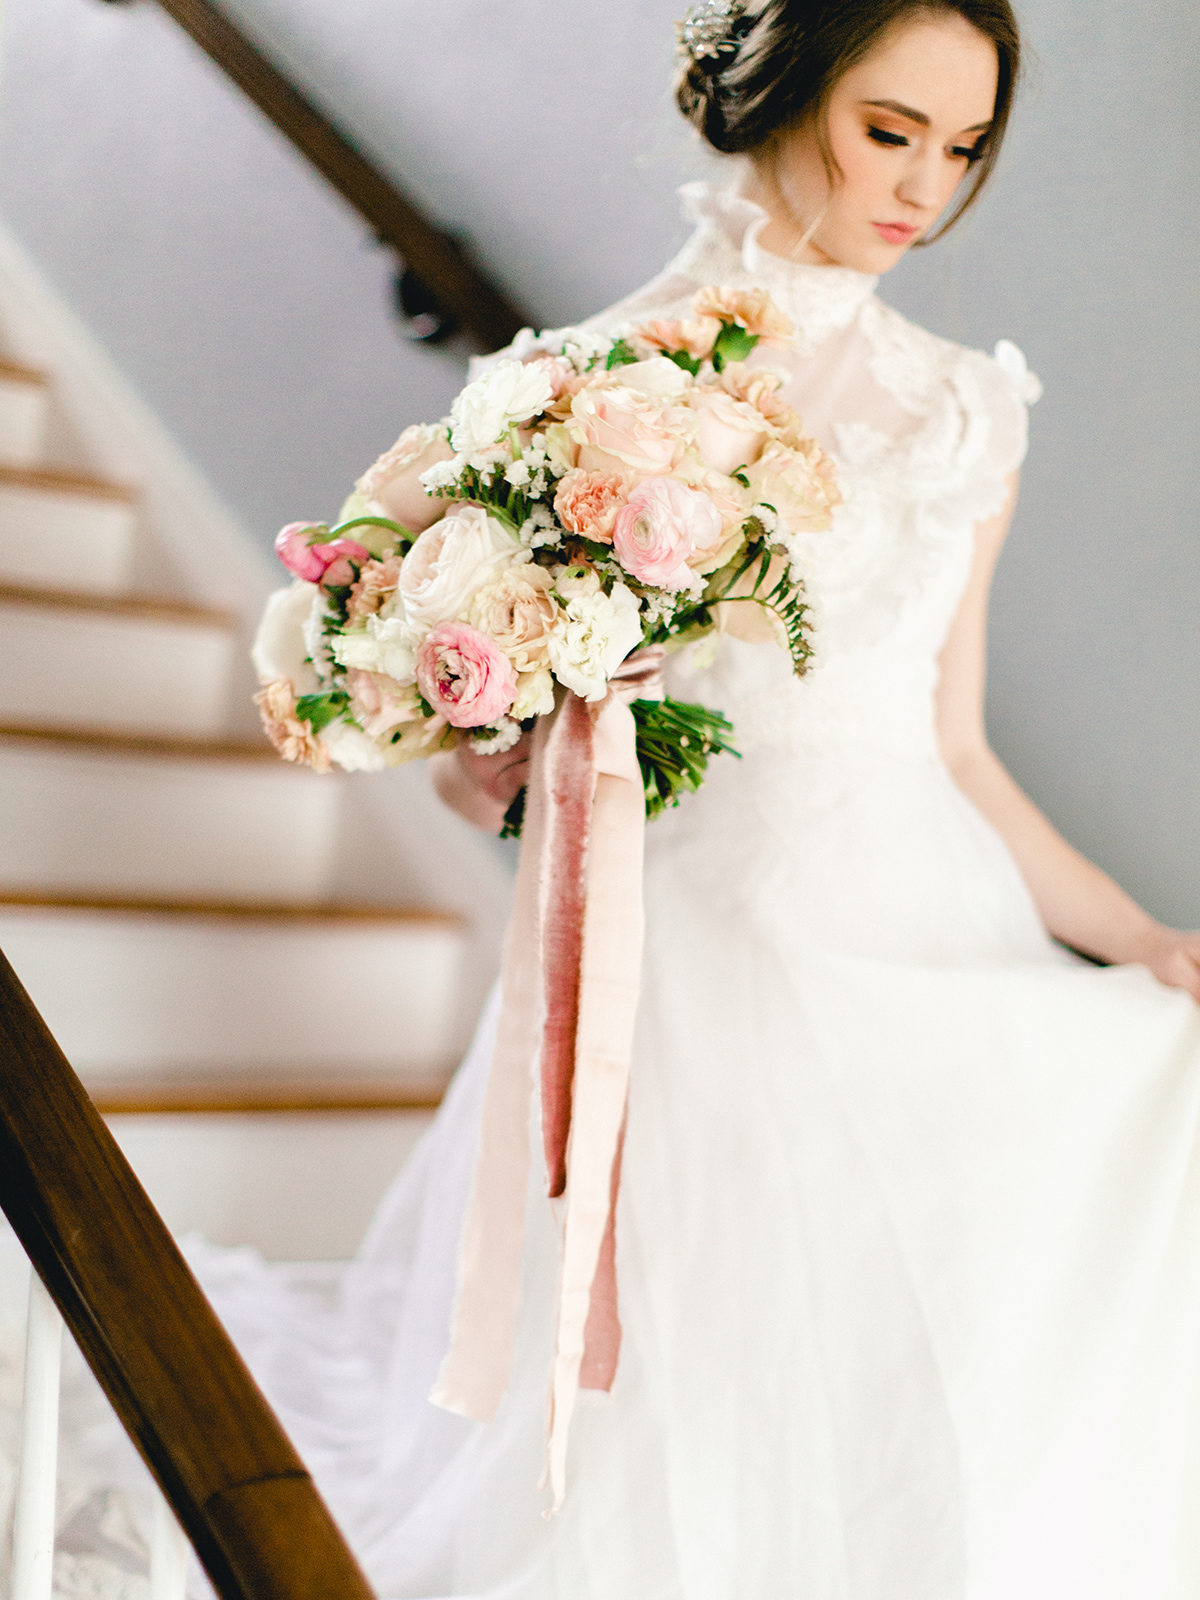 Soft and Feminine Silk Velvet RIbbons for sophisticated bridal bouquet ideas